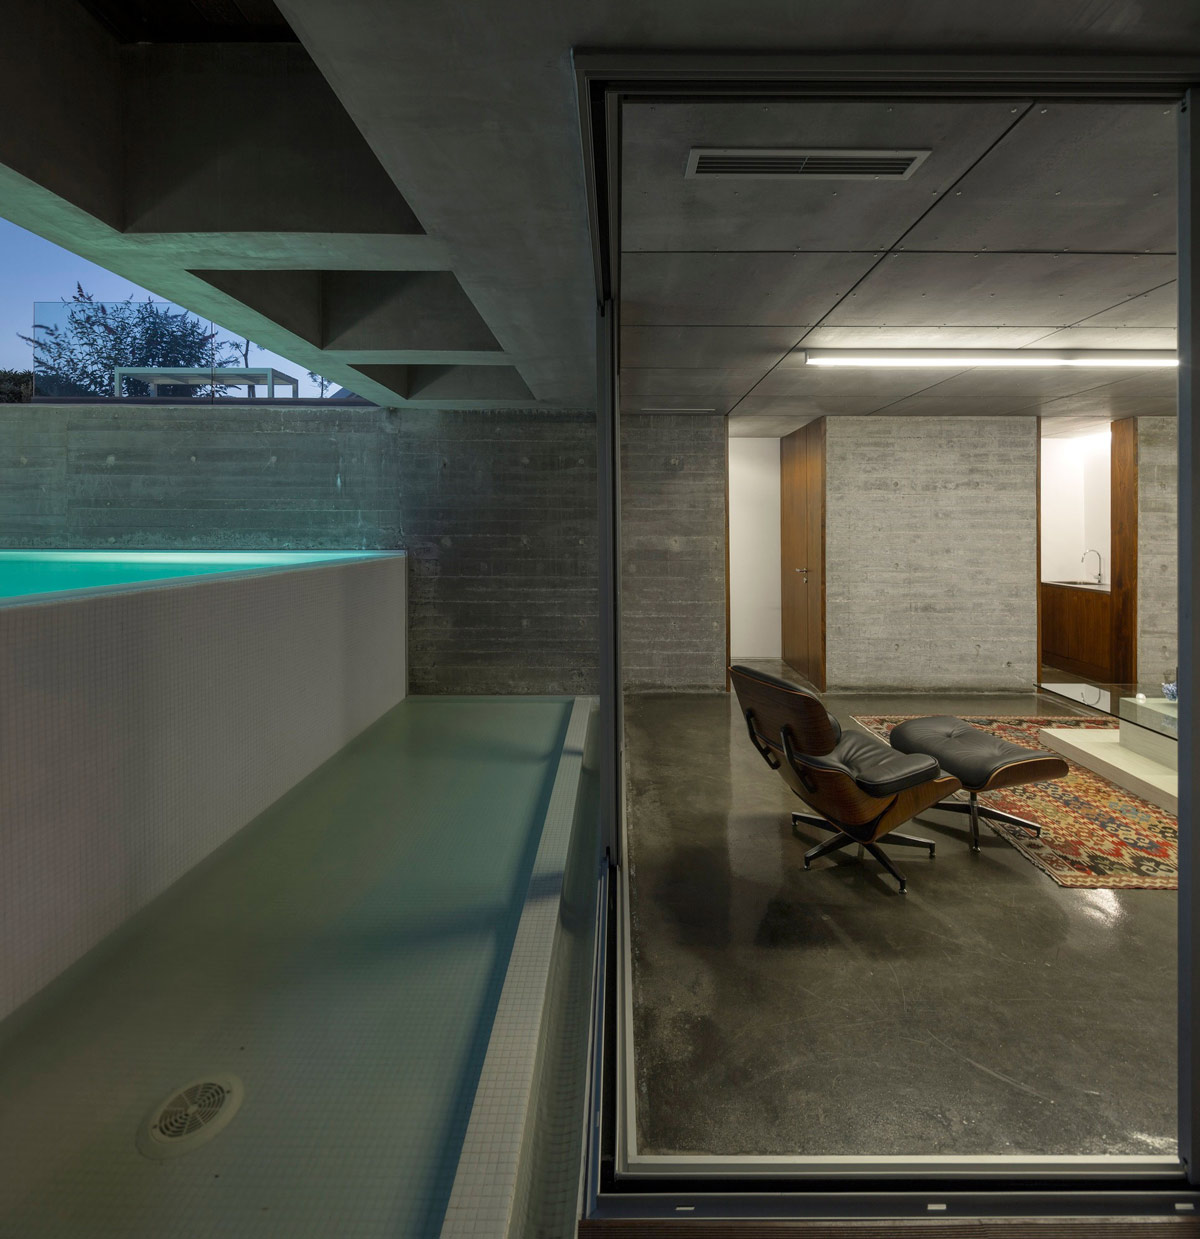 Pool, Patio Doors, Living Space, C+P House in Lisbon, Portugal by Gonçalo das Neves Nunes